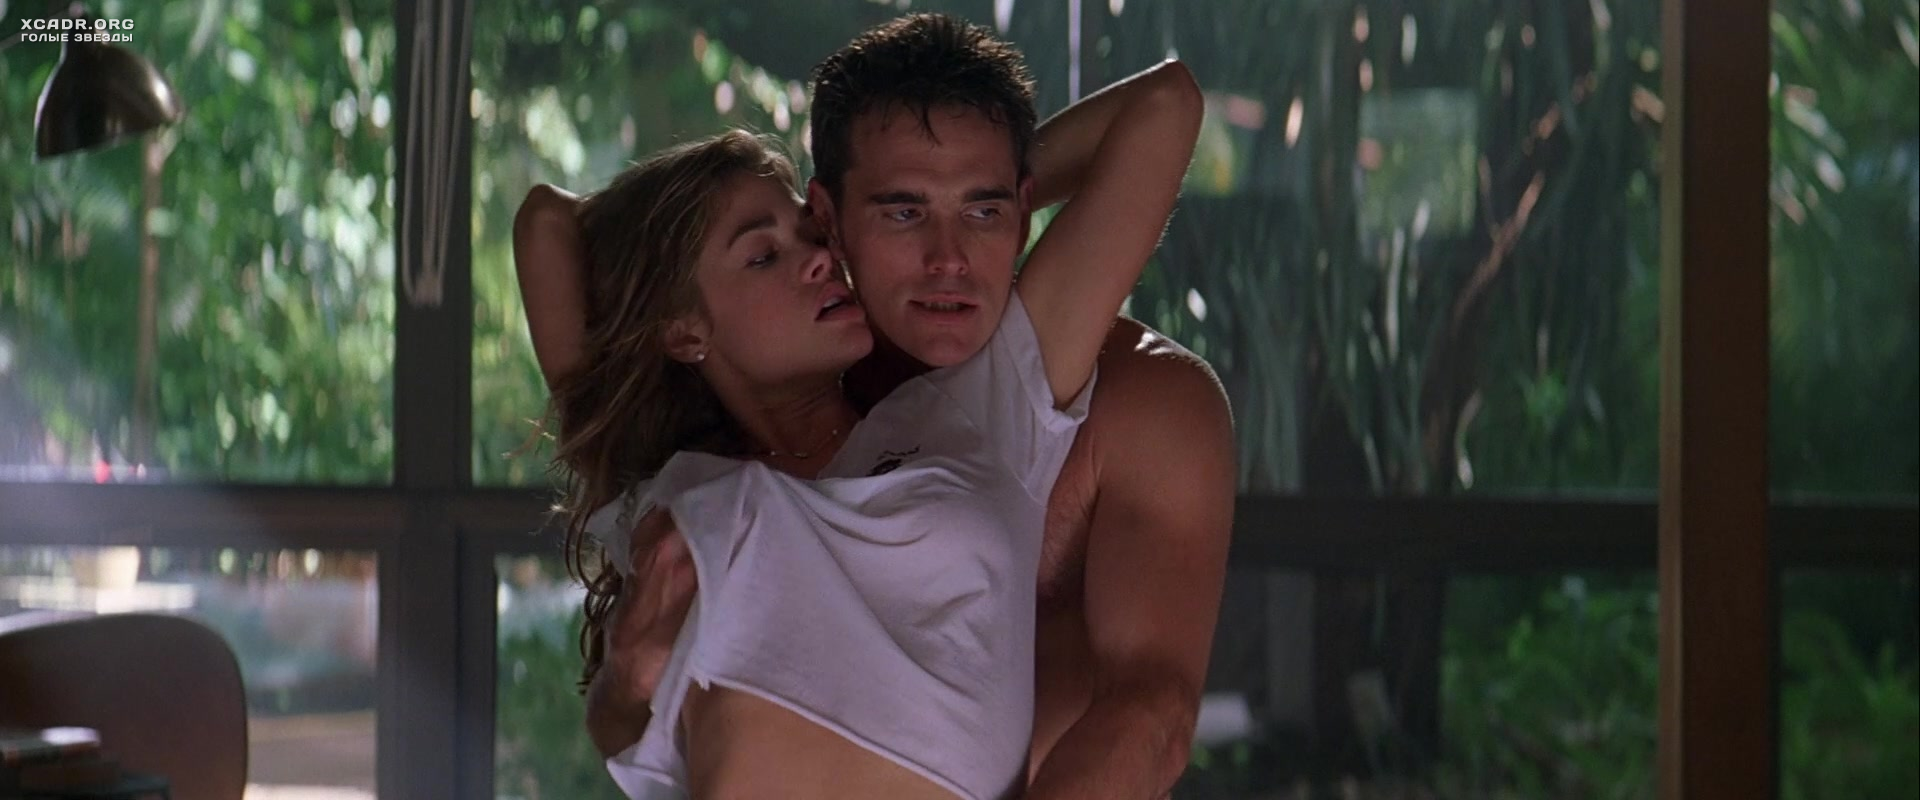 Has denise richards done a porn movie